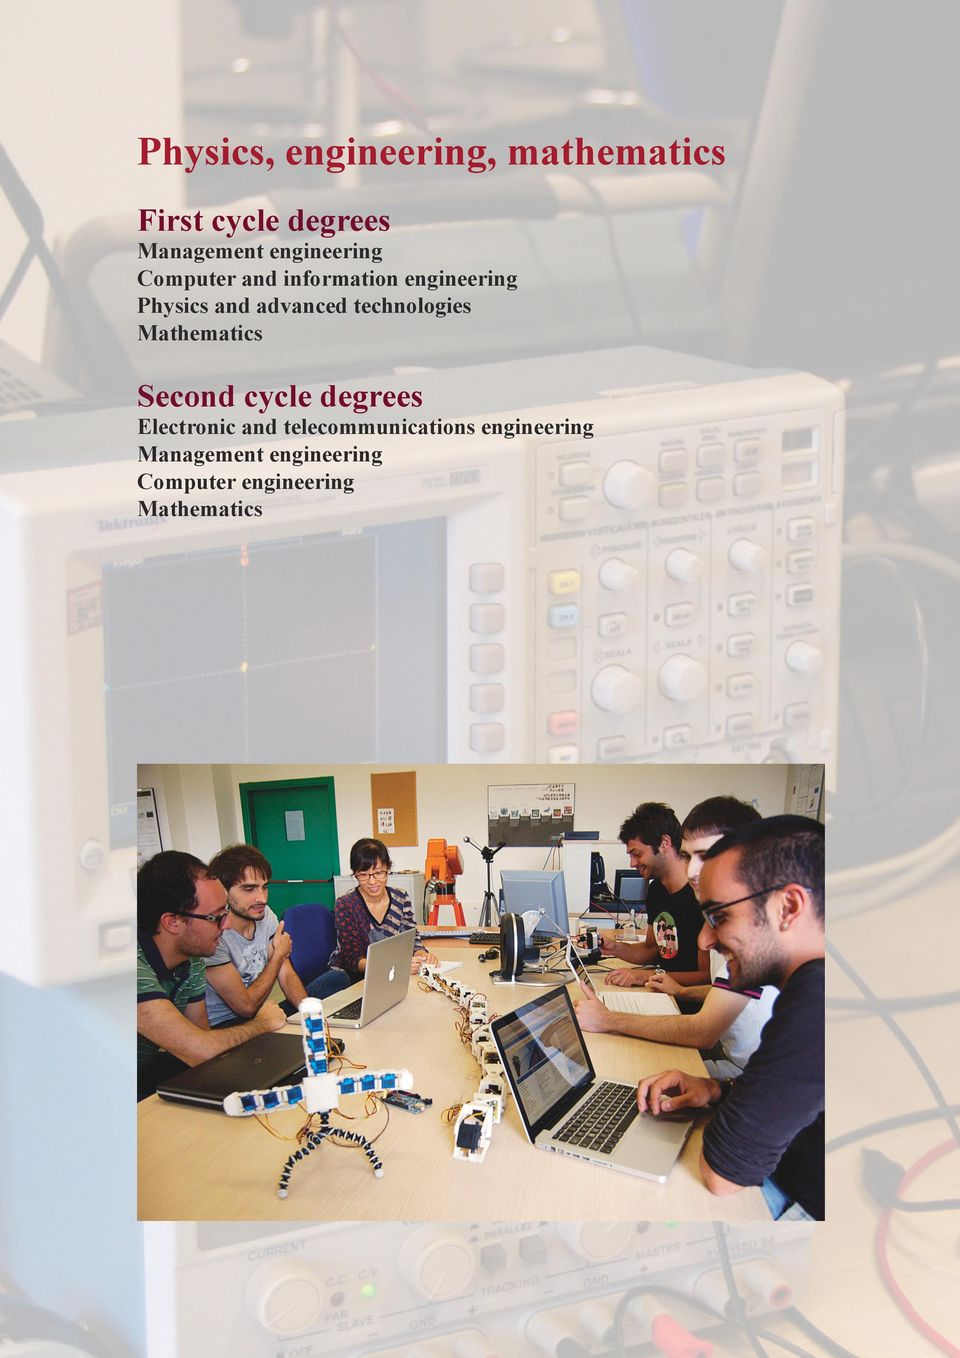 technologies Mathematics Second cycle degrees Electronic and